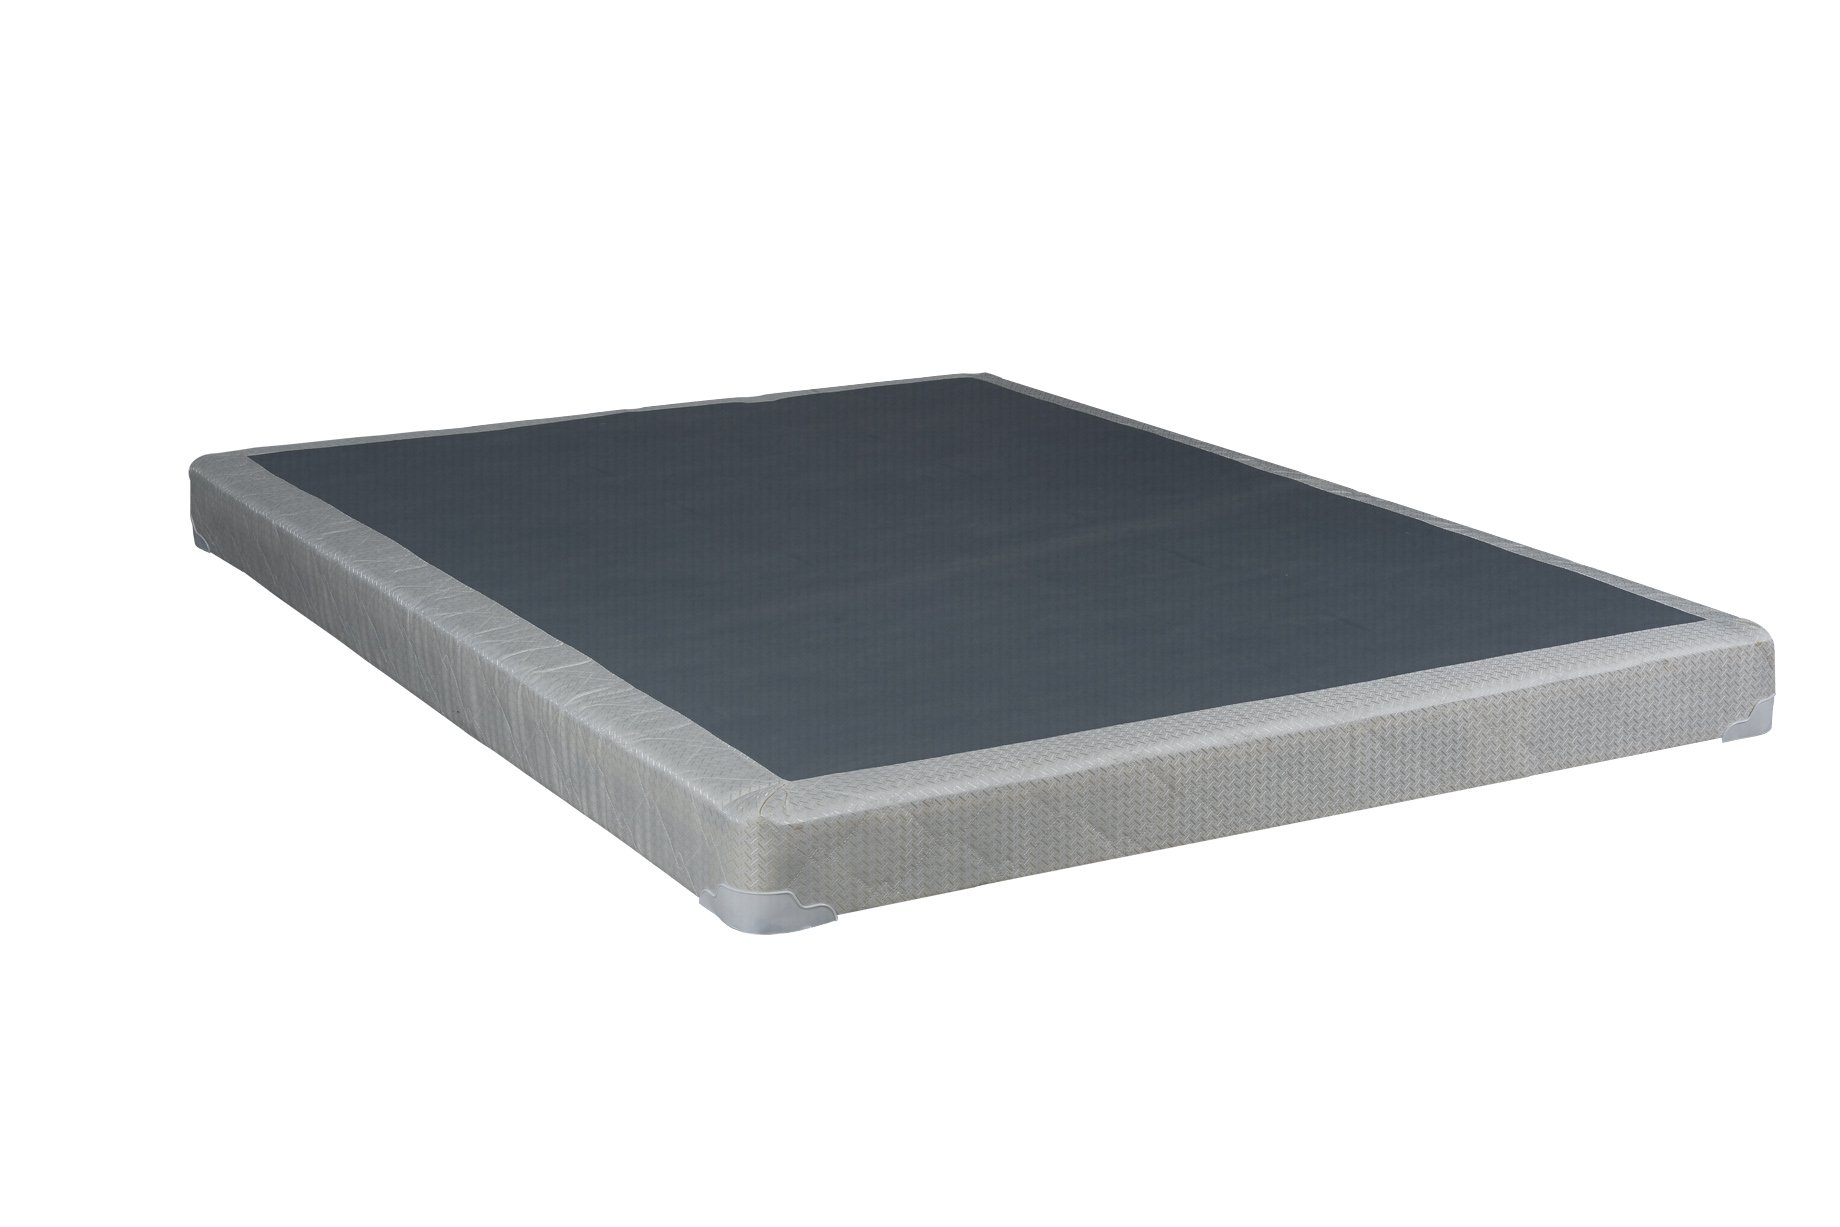 Continental Mattress Queen Size 4'' Fully Assembled Box Spring For Mattress by Continental Mattress (Image #3)